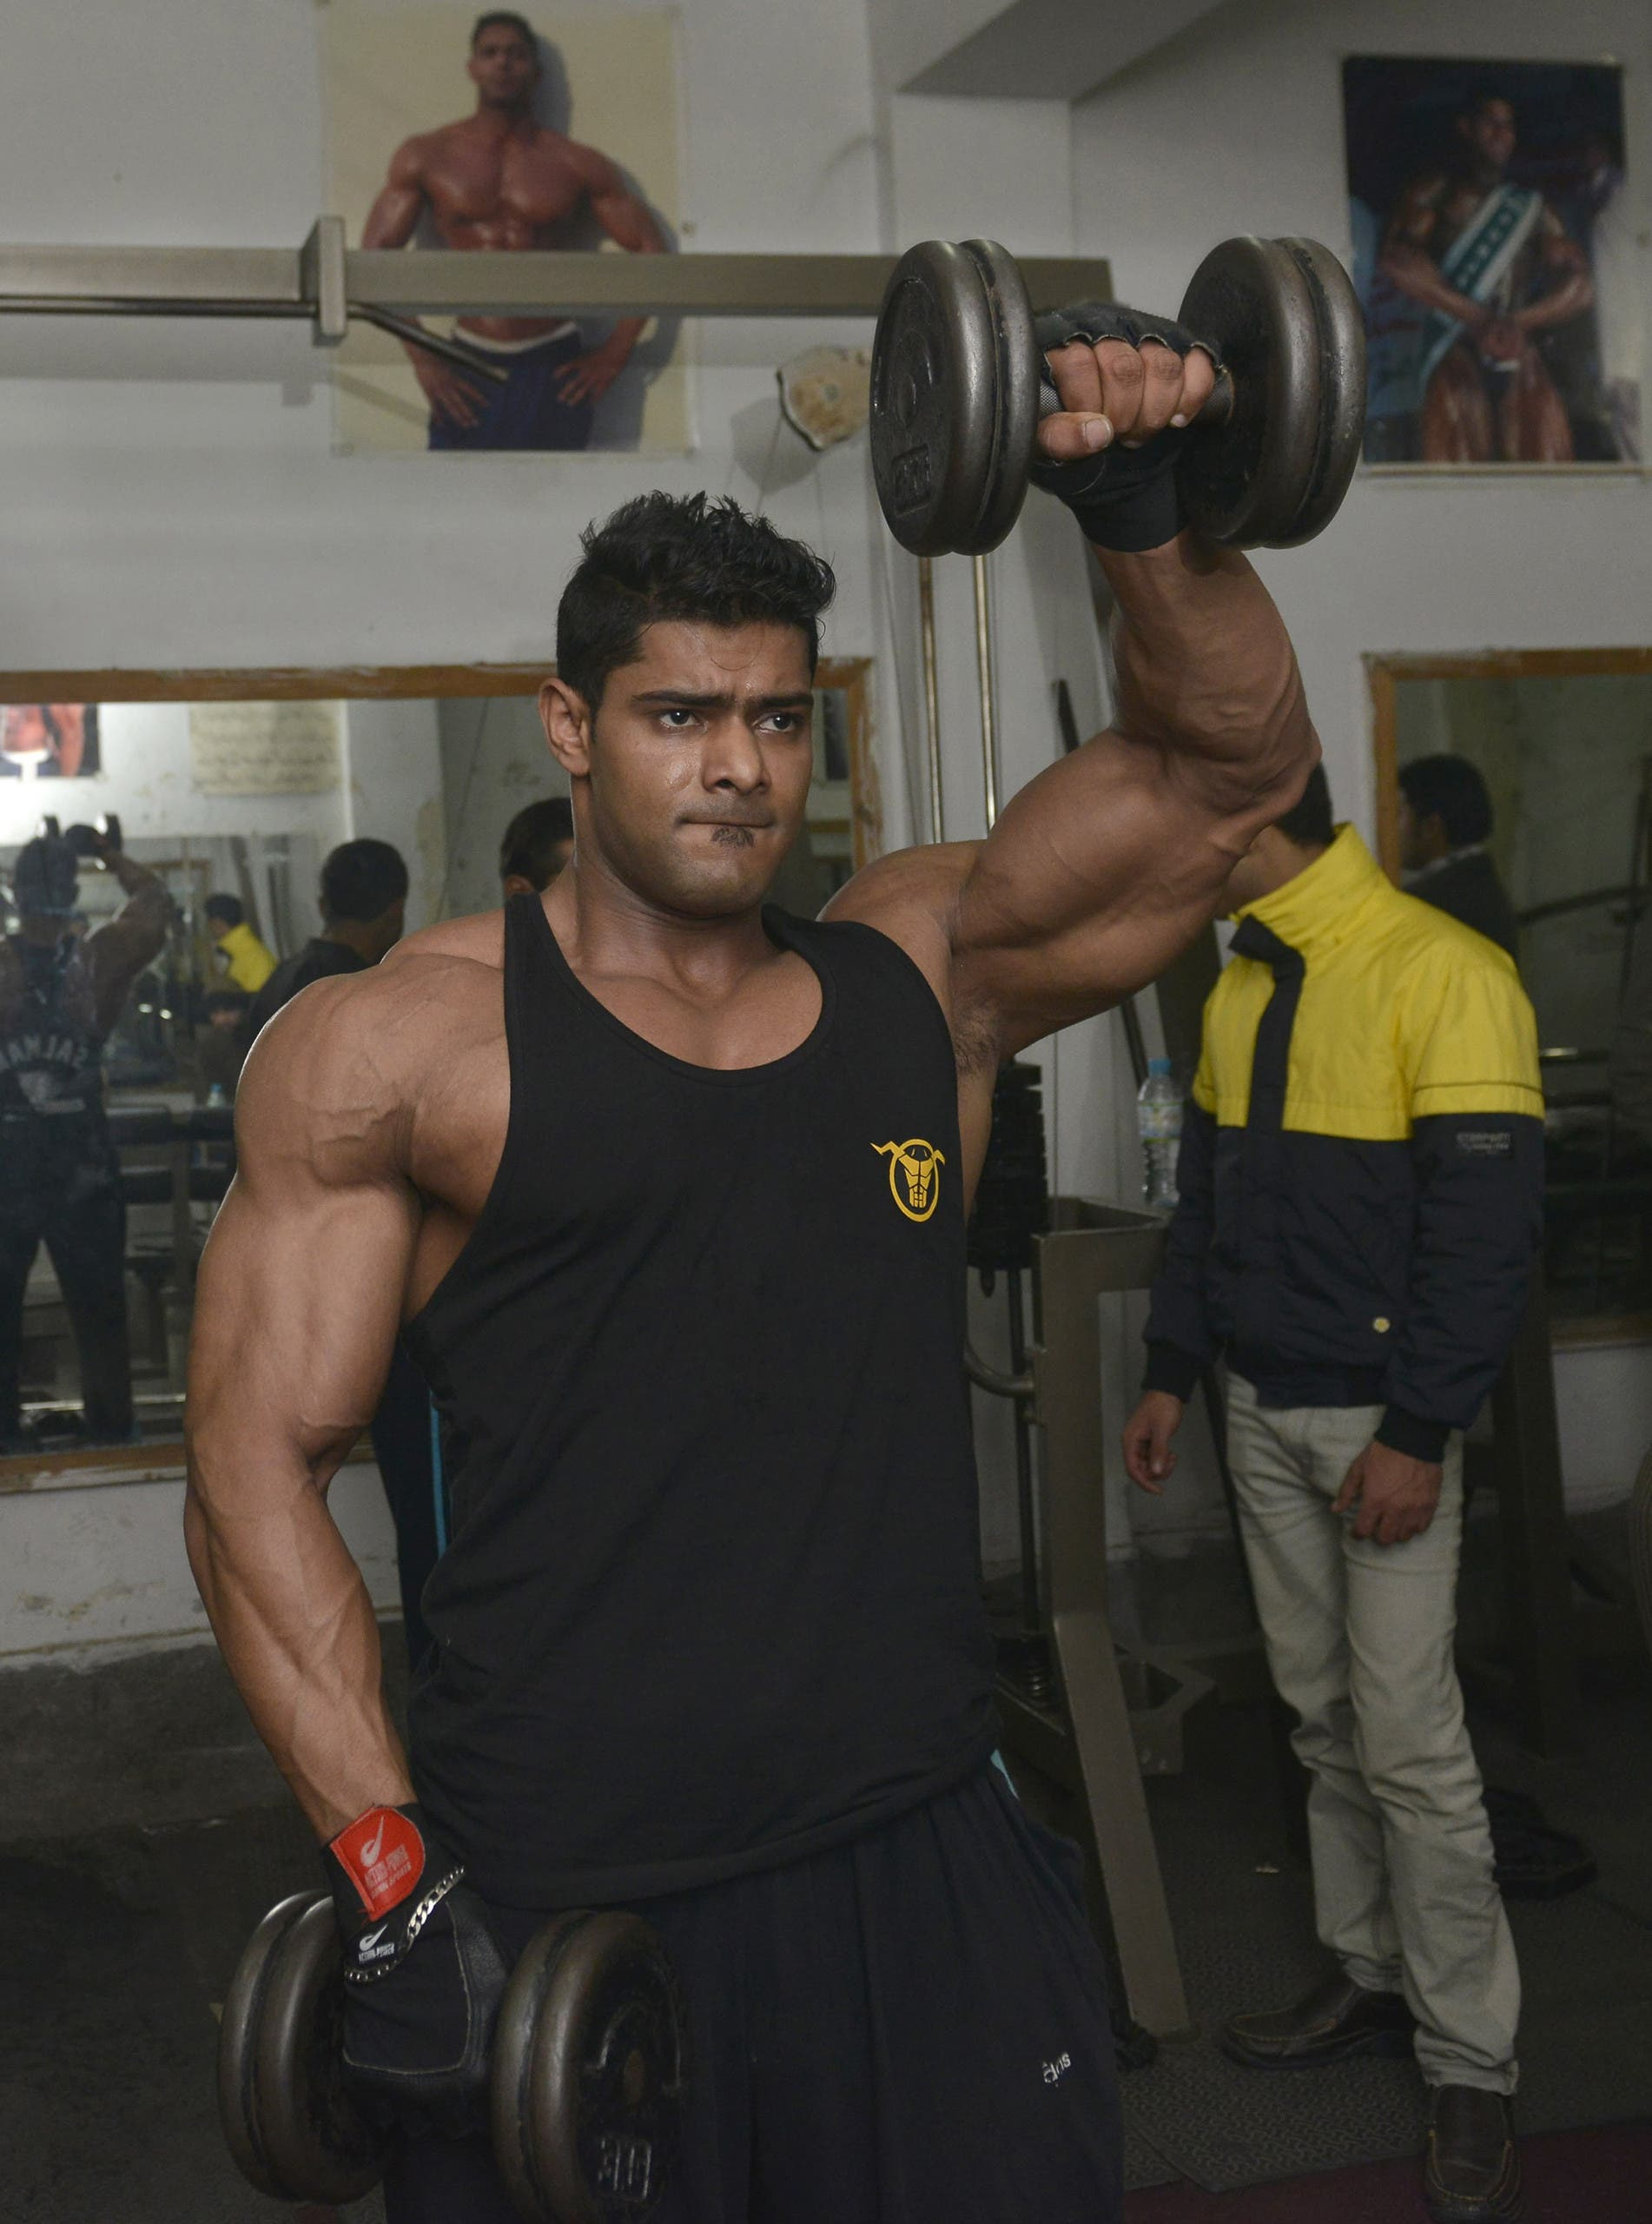 Mr Musclemania S Dilemma Abandon His Passion Or Pakistan